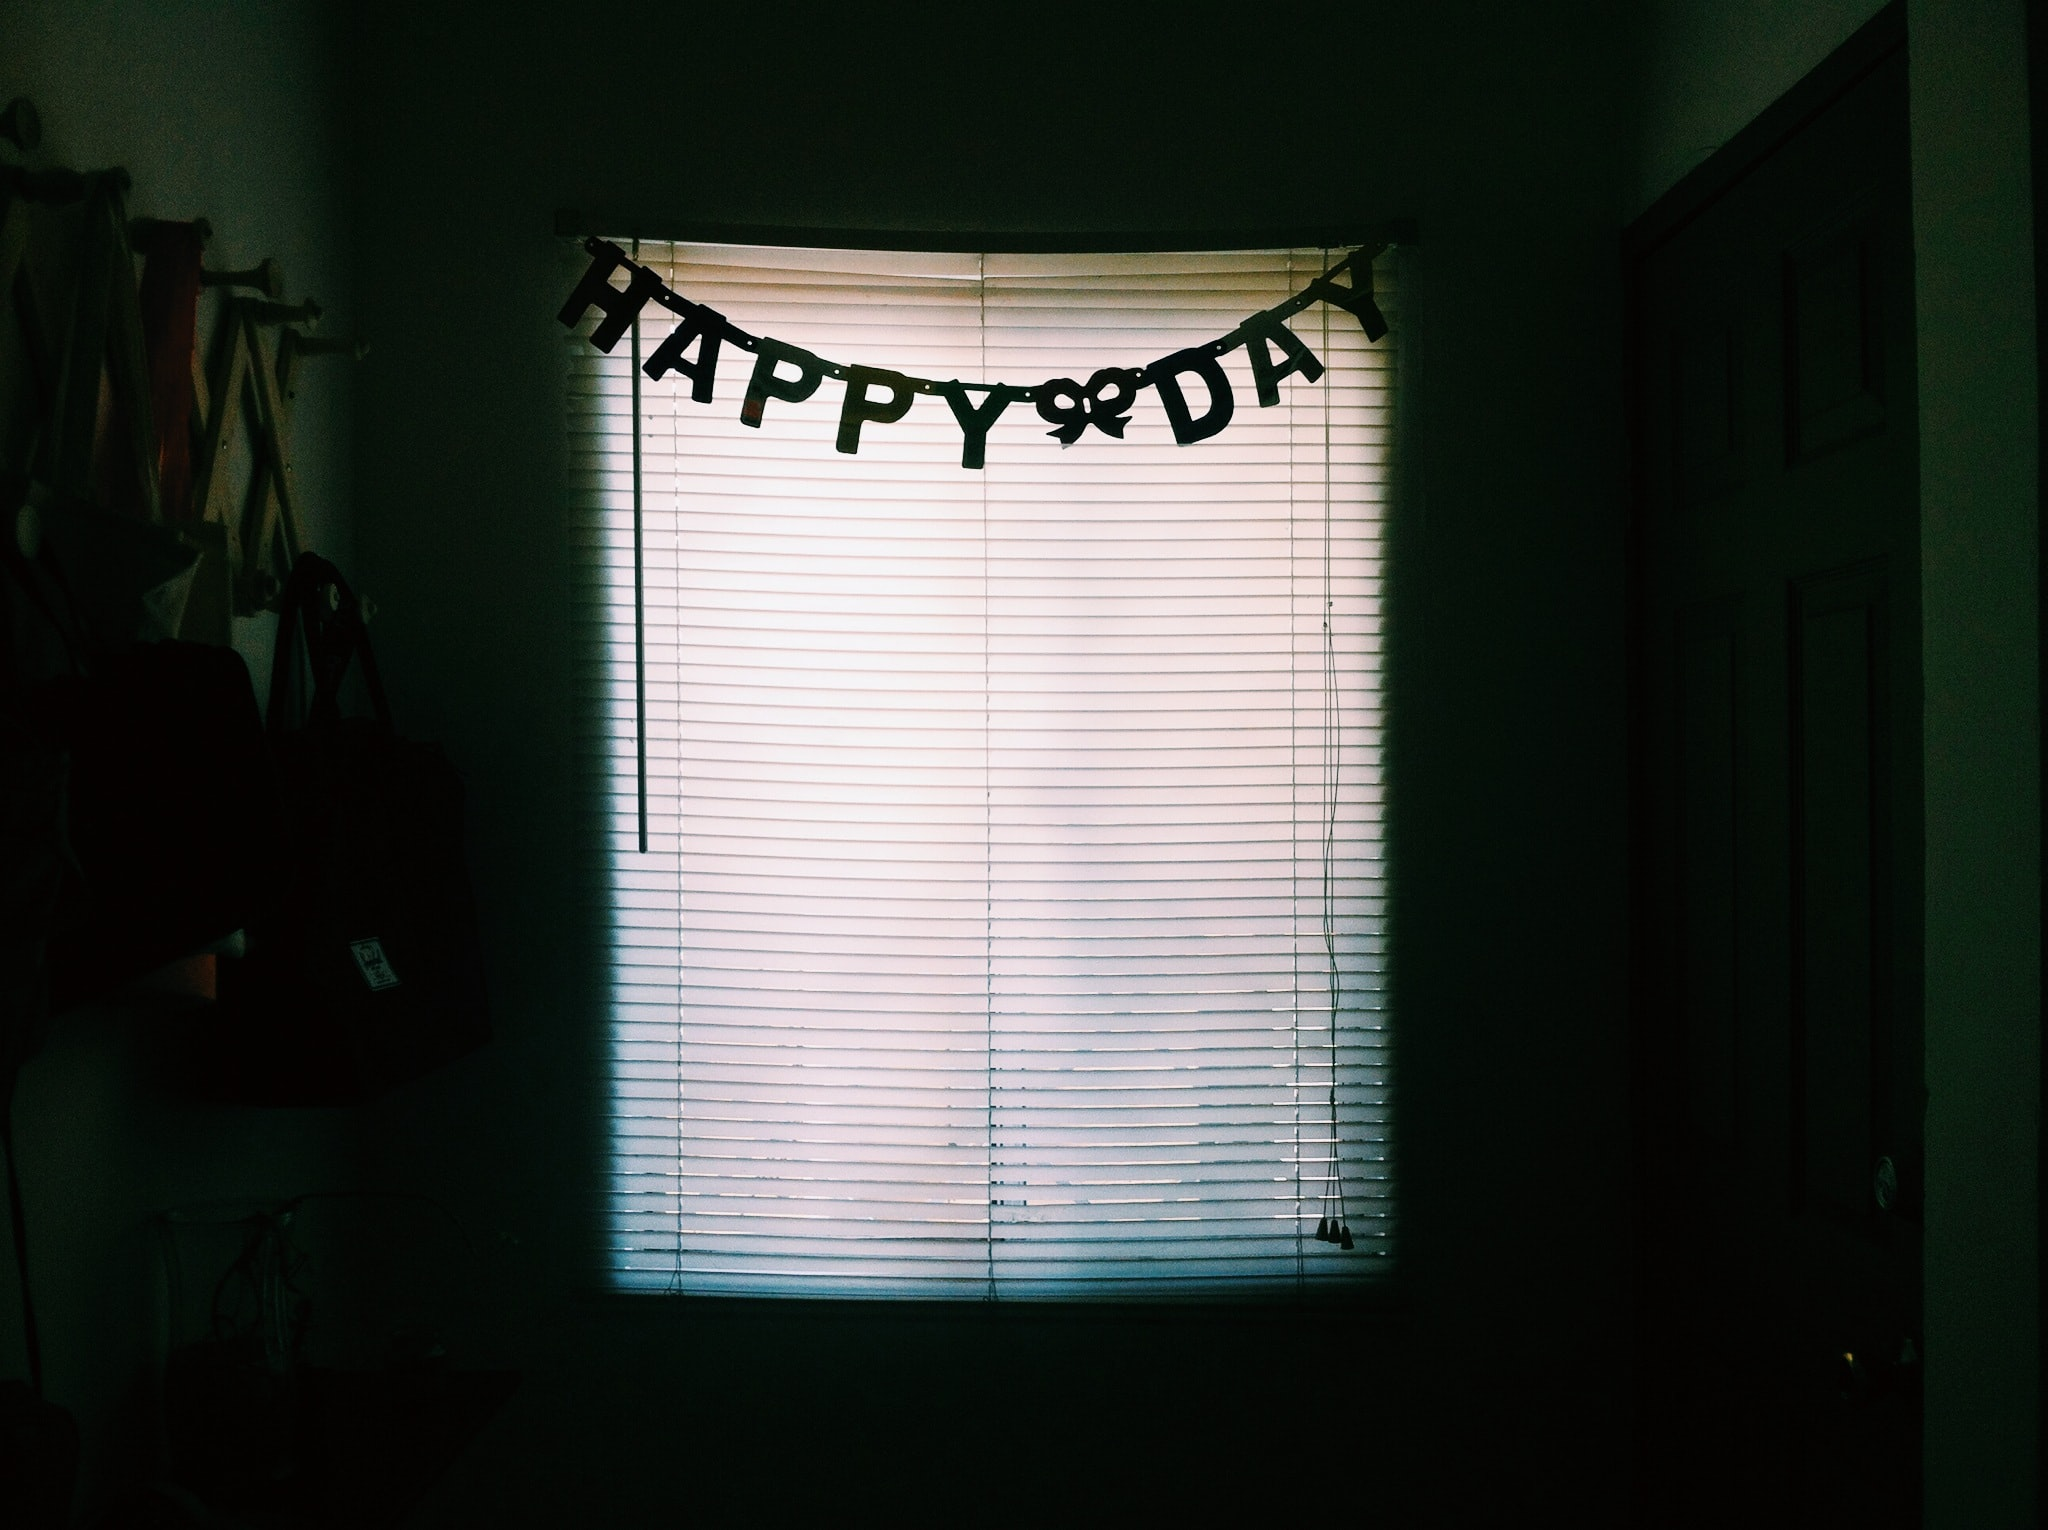 A happy birthday banner is seen hanging on the window of a darkened room.